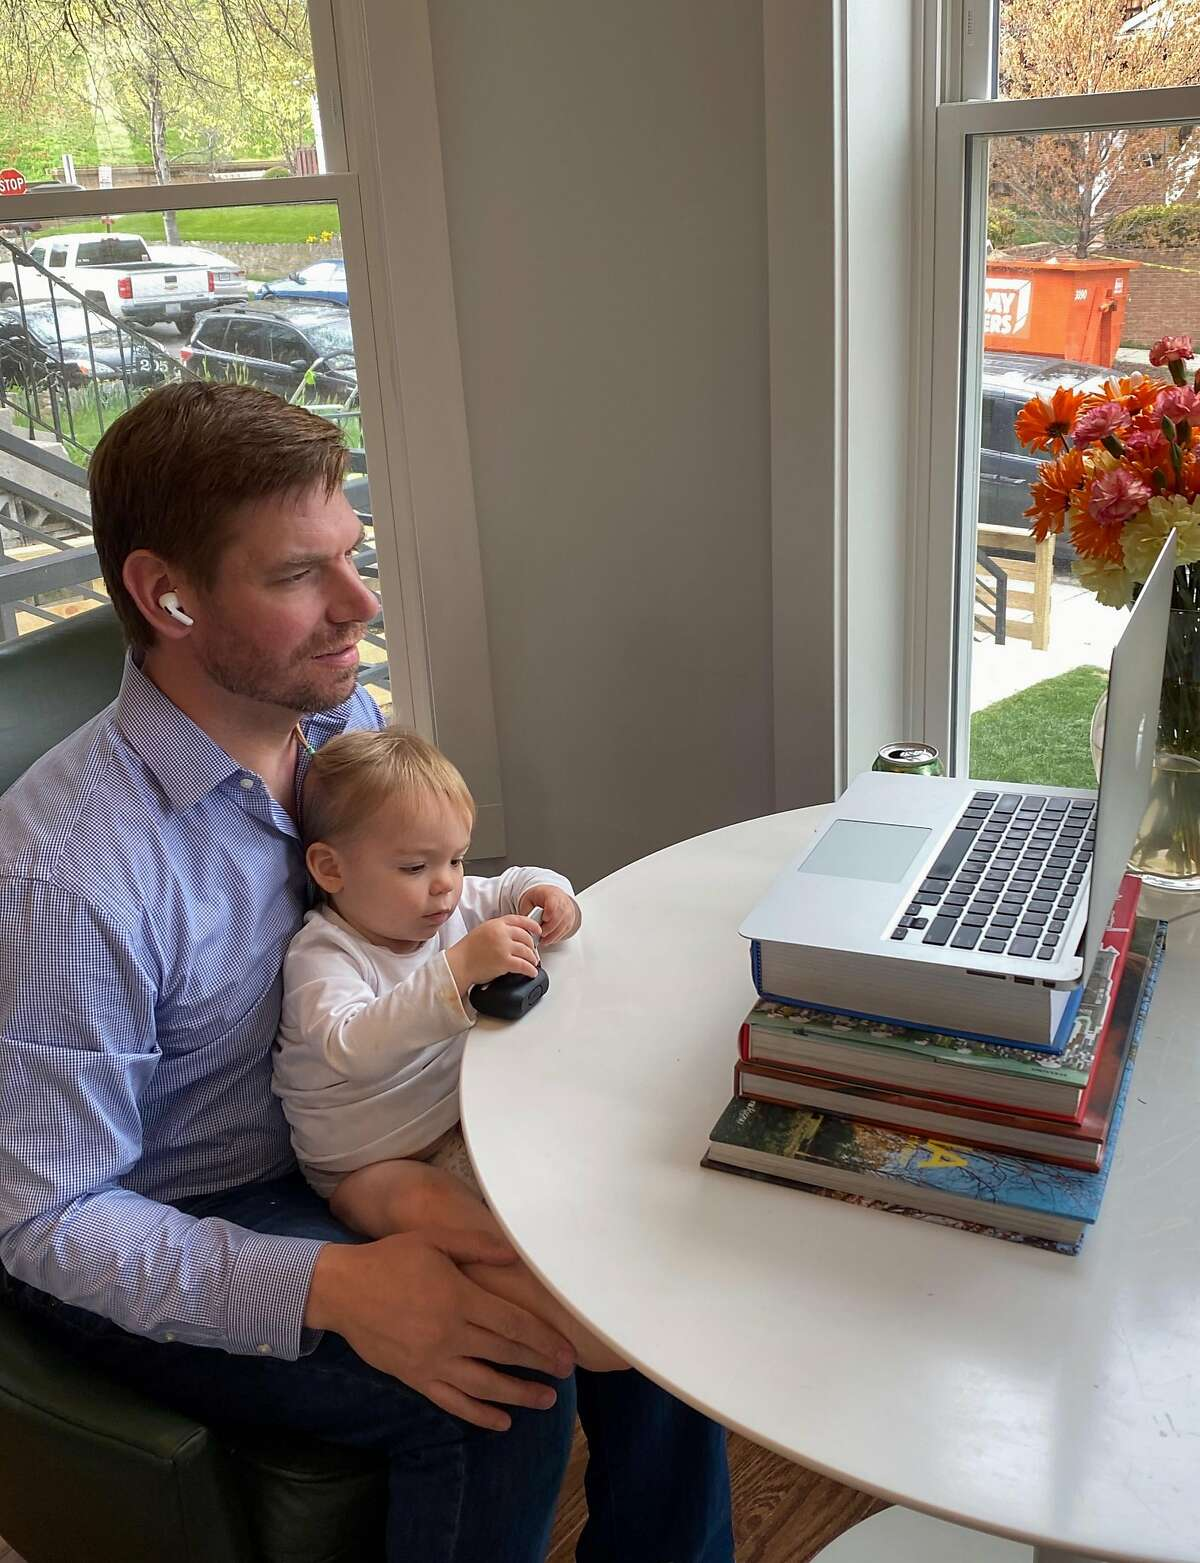 Rep. Eric Swalwell, D-Dublin, participates in a video conference call while at home during the coronavirus pandemic.